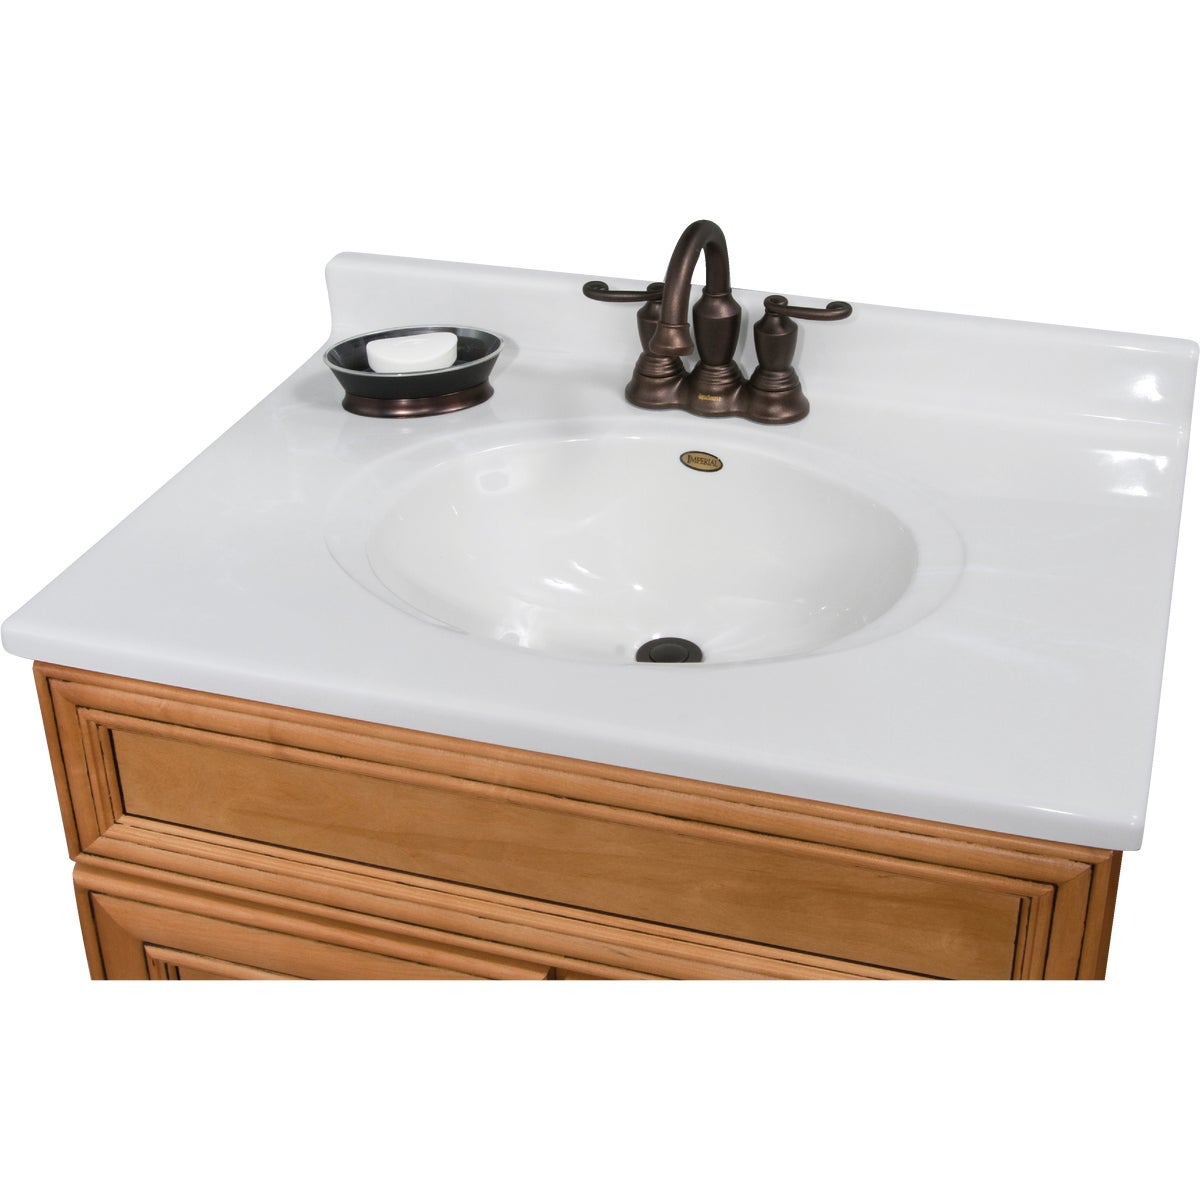 31X22 WHT/WHT VANITY TOP - VC3122W by Imperial Marble Corp